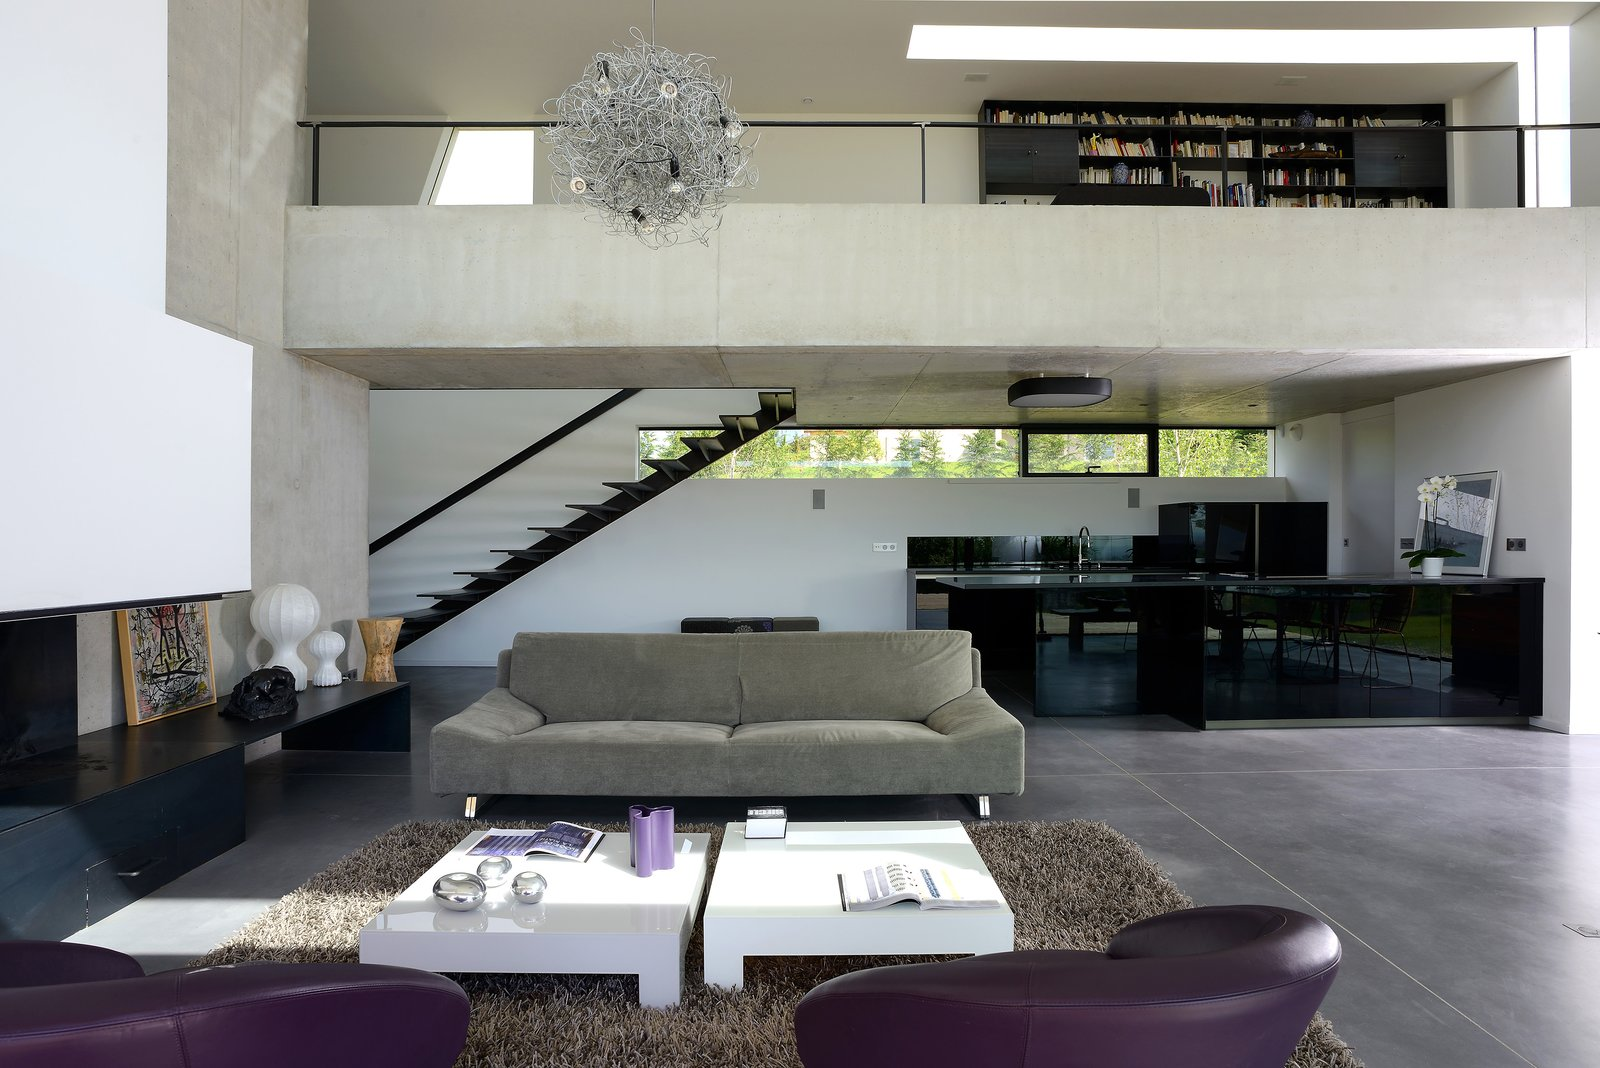 Sofa, Recliner, Chair, Coffee Tables, Ceiling Lighting, Concrete Floor, Standard Layout Fireplace, Staircase, Metal Tread, and Metal Railing the livingroom  Chipster Blister House by AUM Pierre Minassian